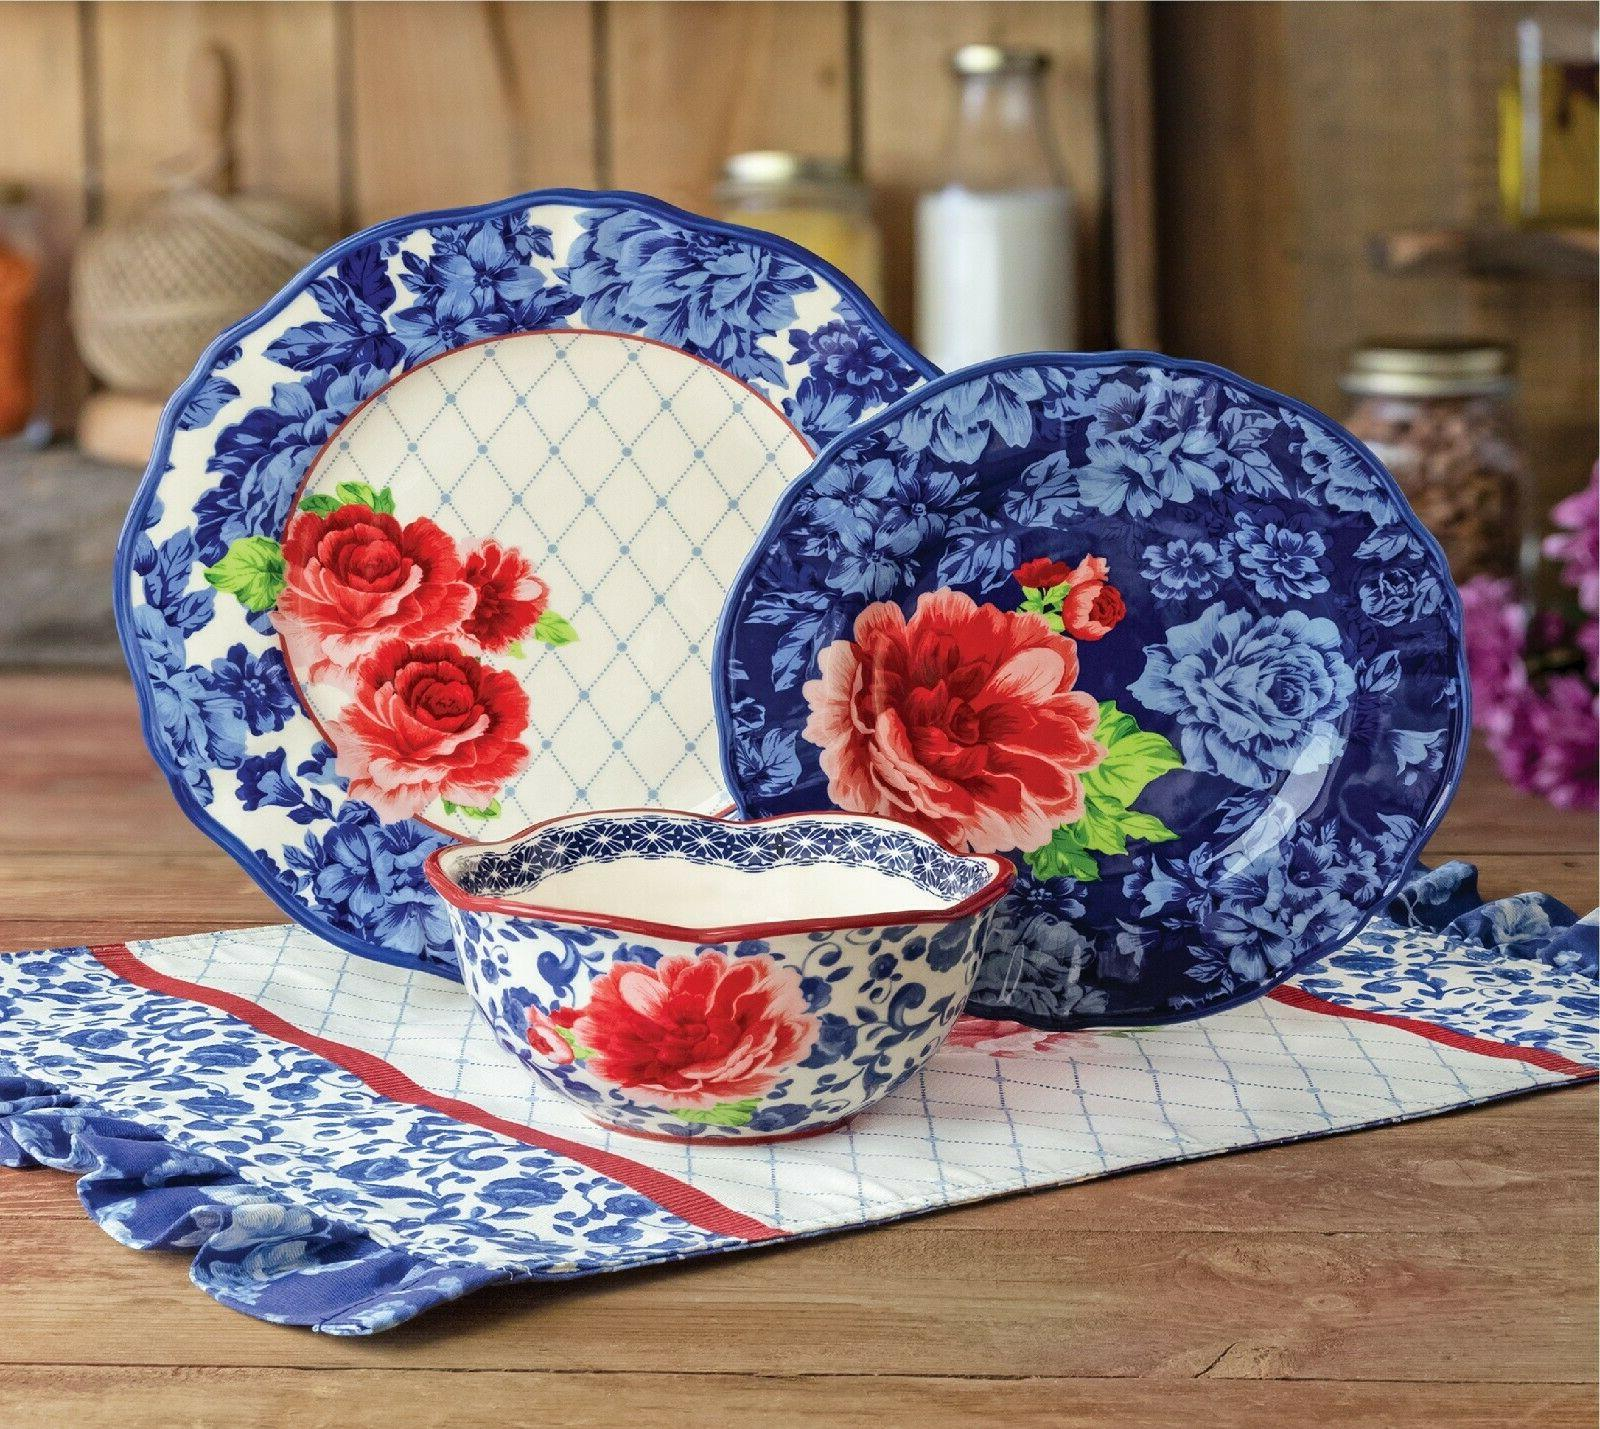 The Woman Floral Blue Dishwasher